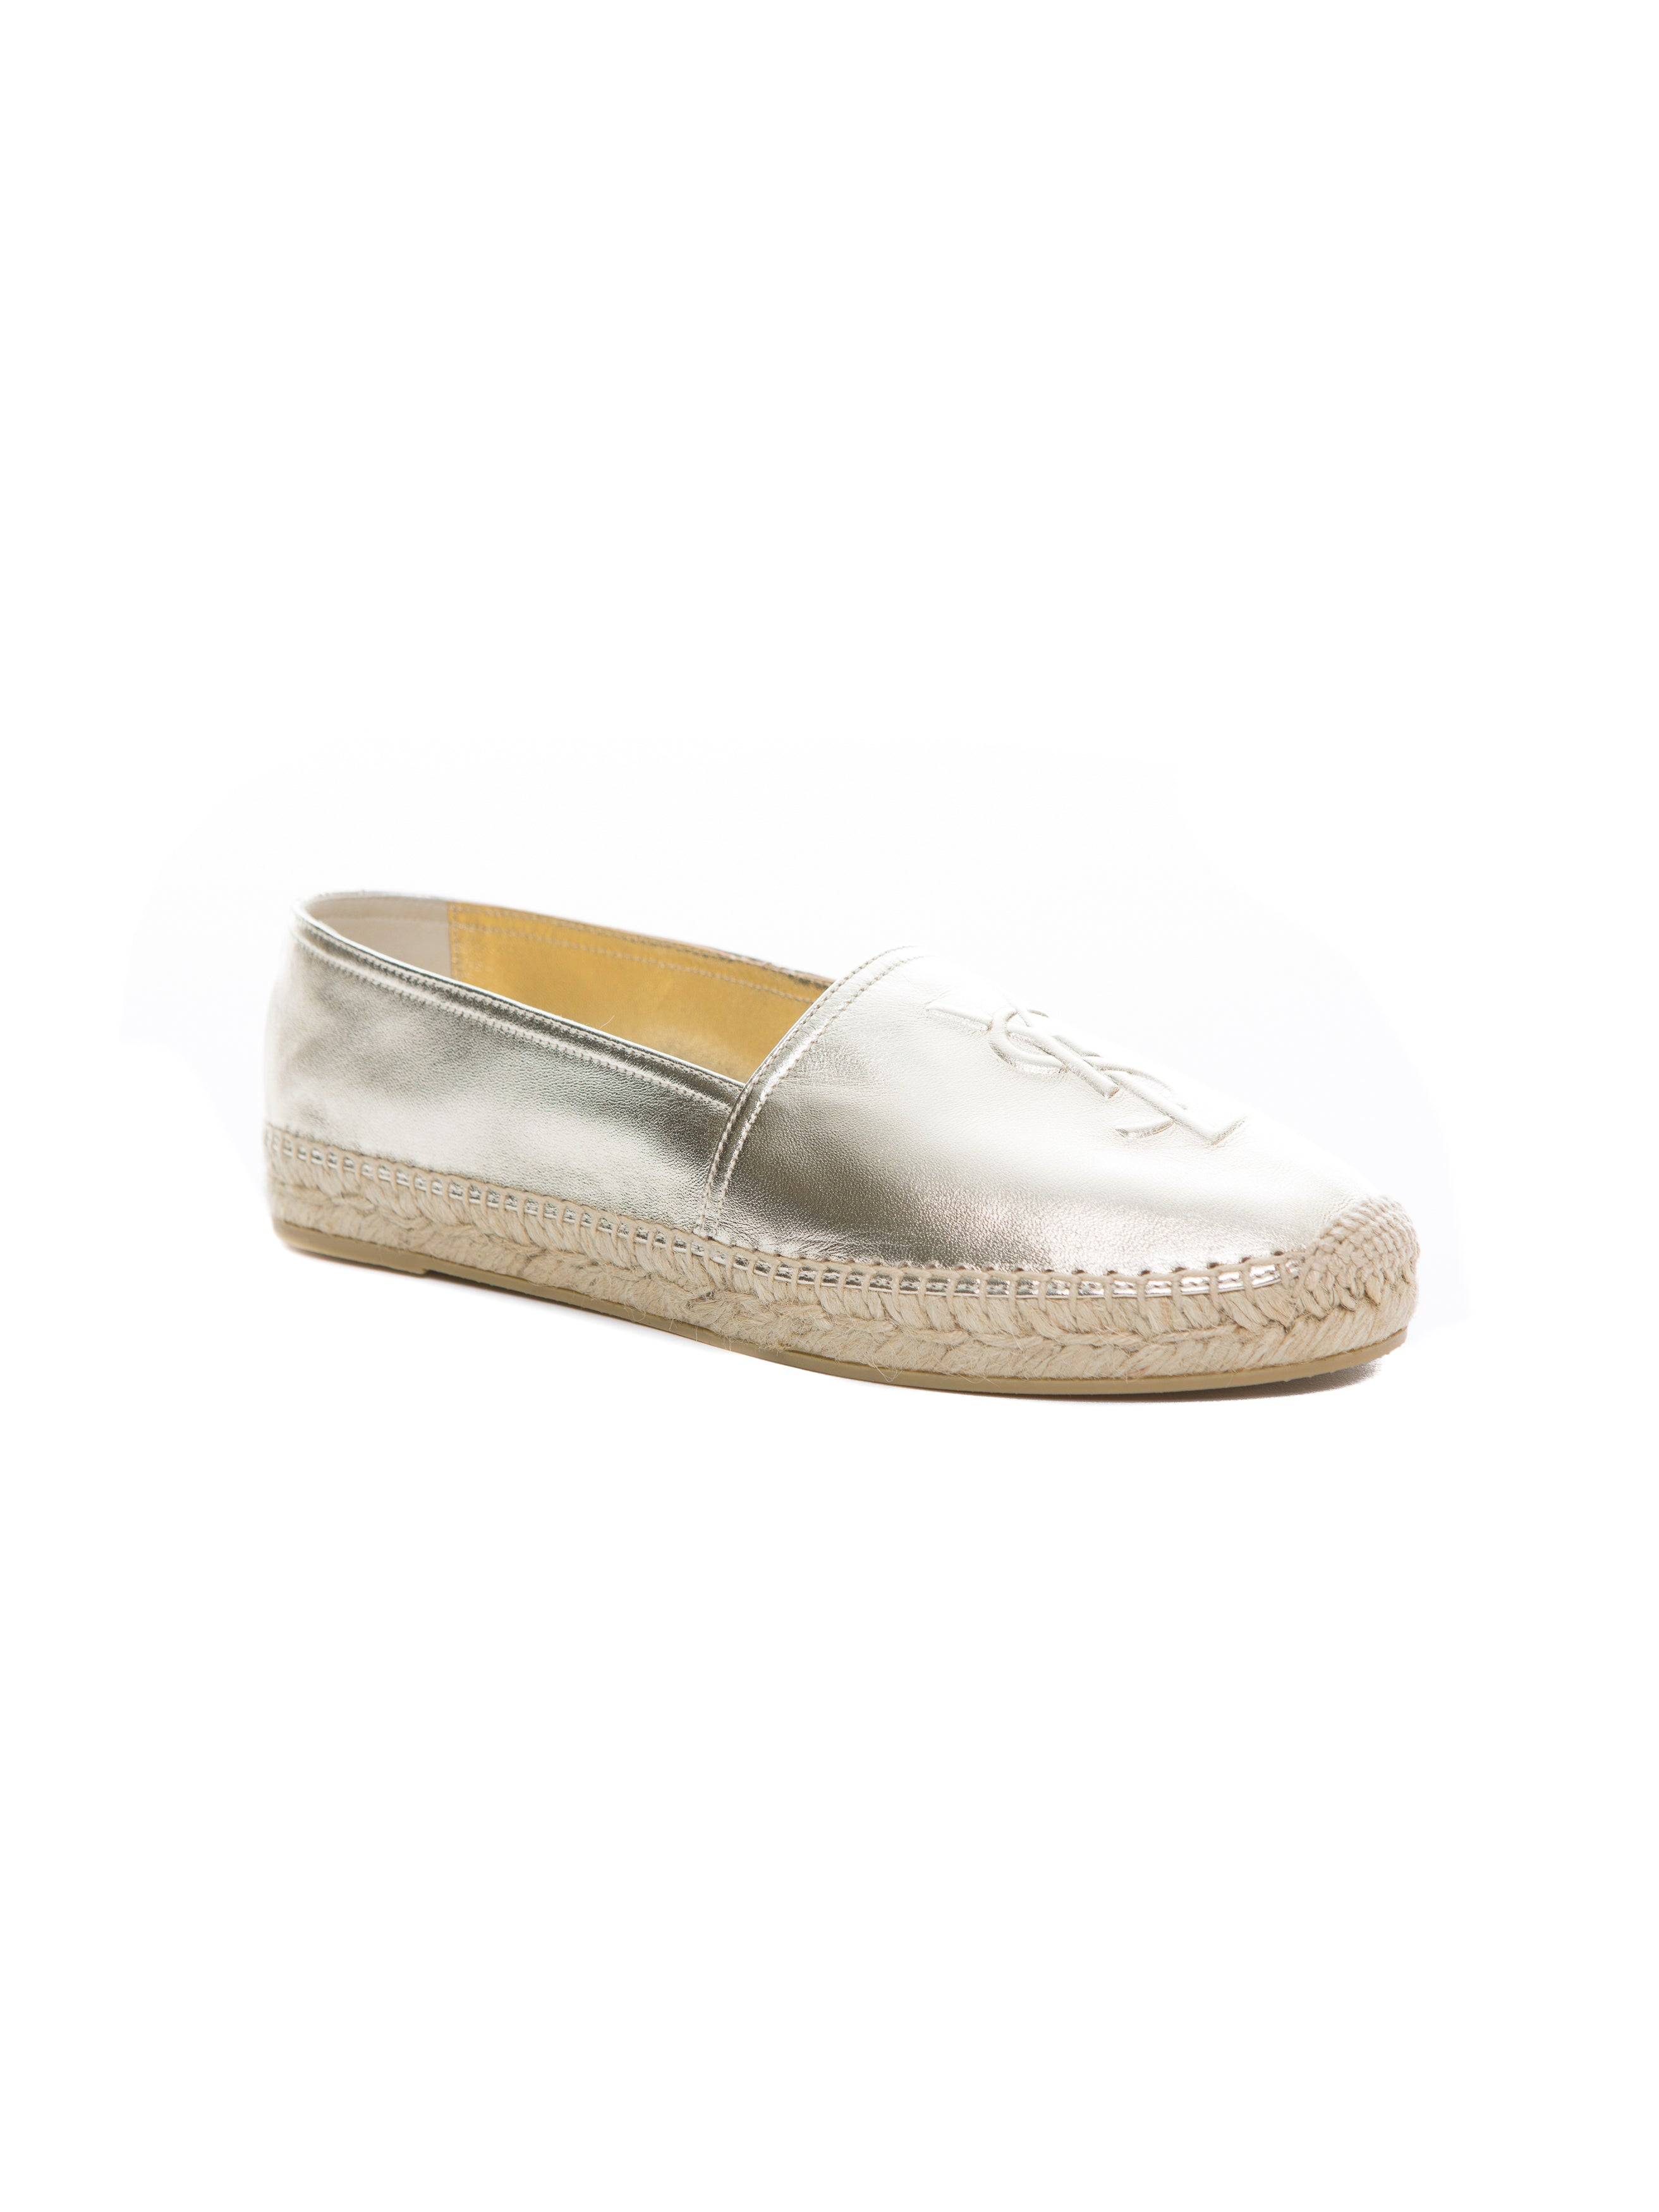 MONOGRAM ESPADRILLE IN PALE GOLD METALLIC LEATHER